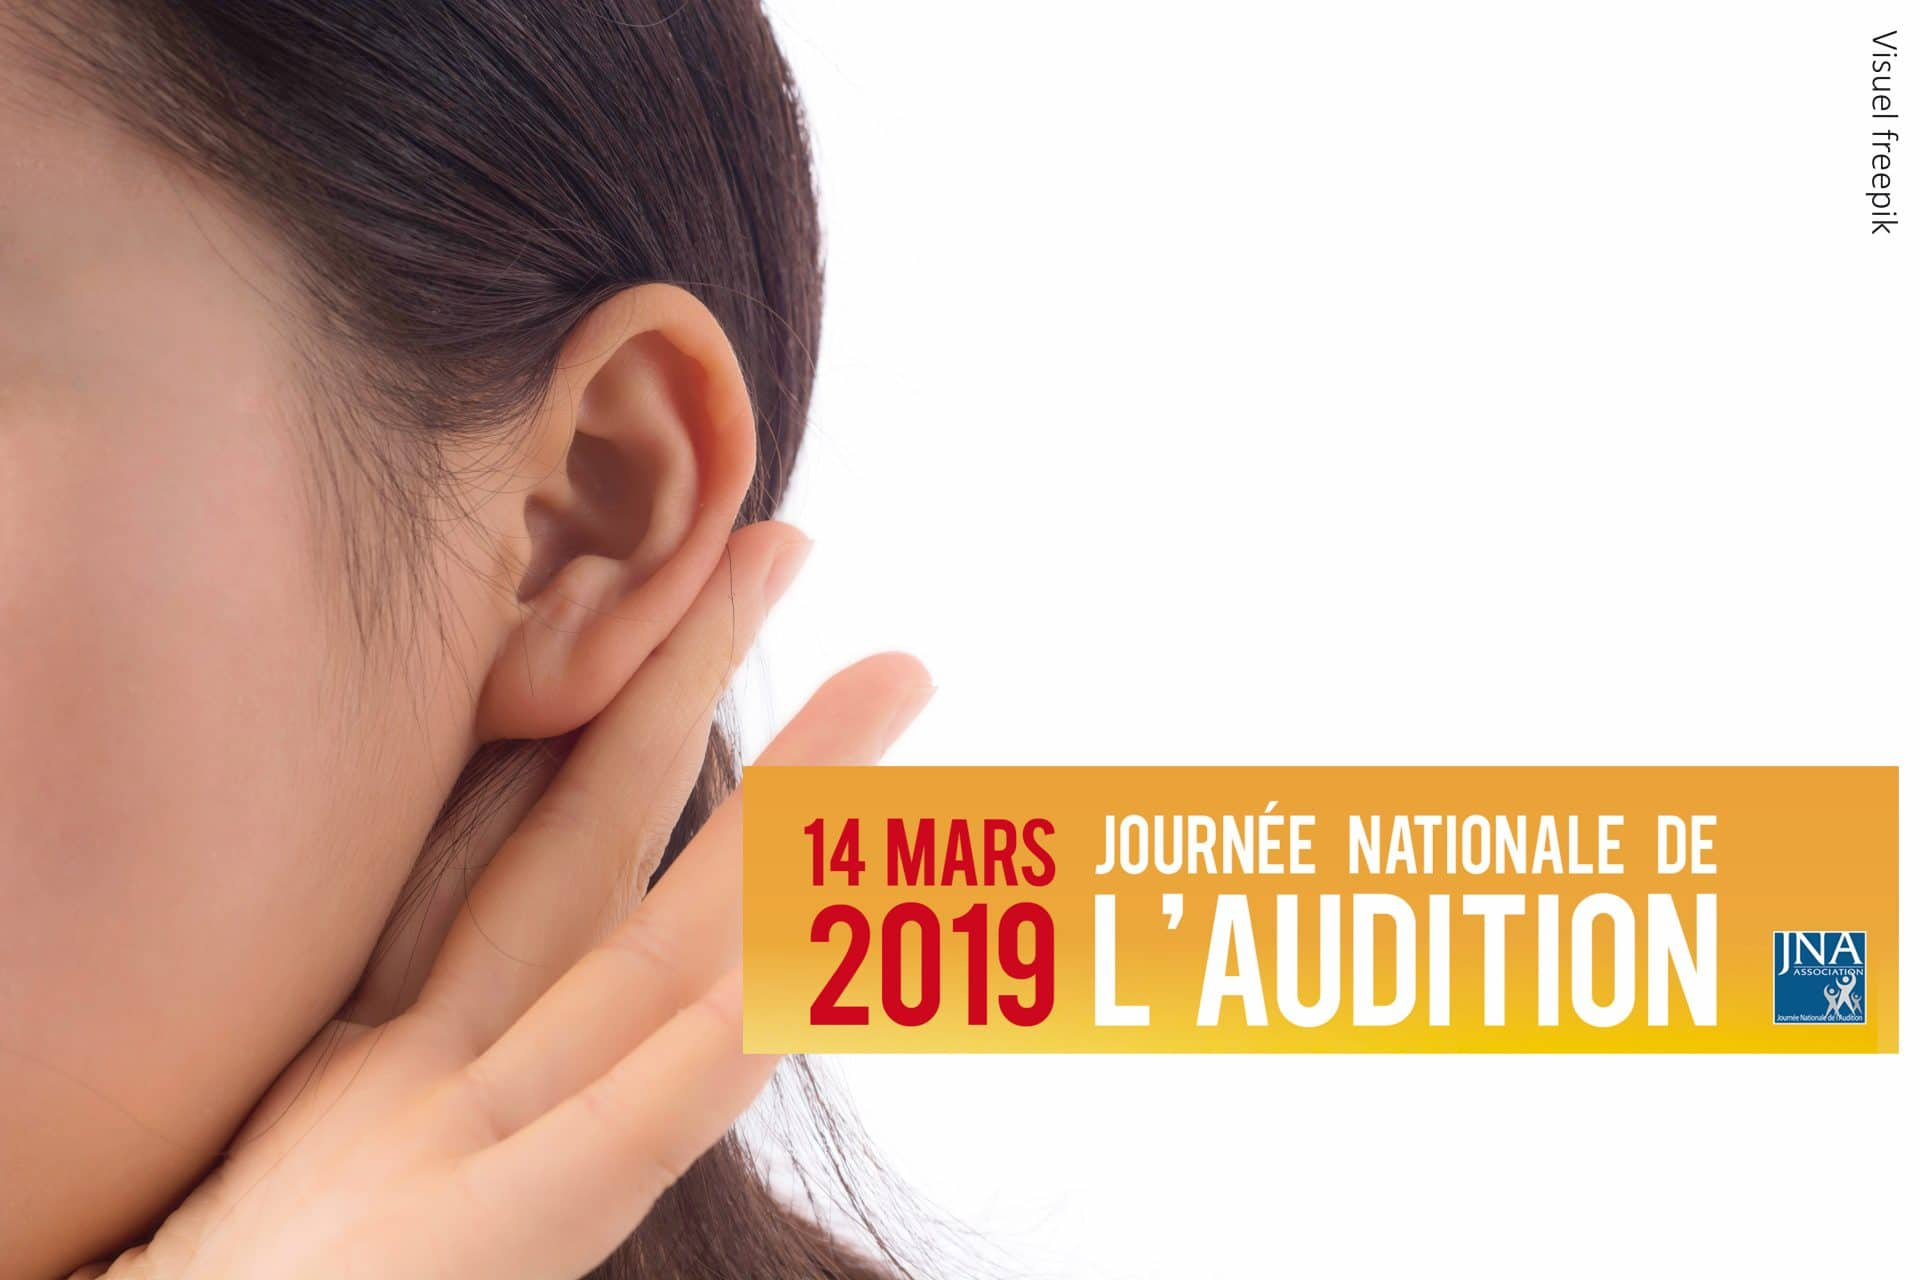 Le 14 mars : Journée nationale de l'audition!